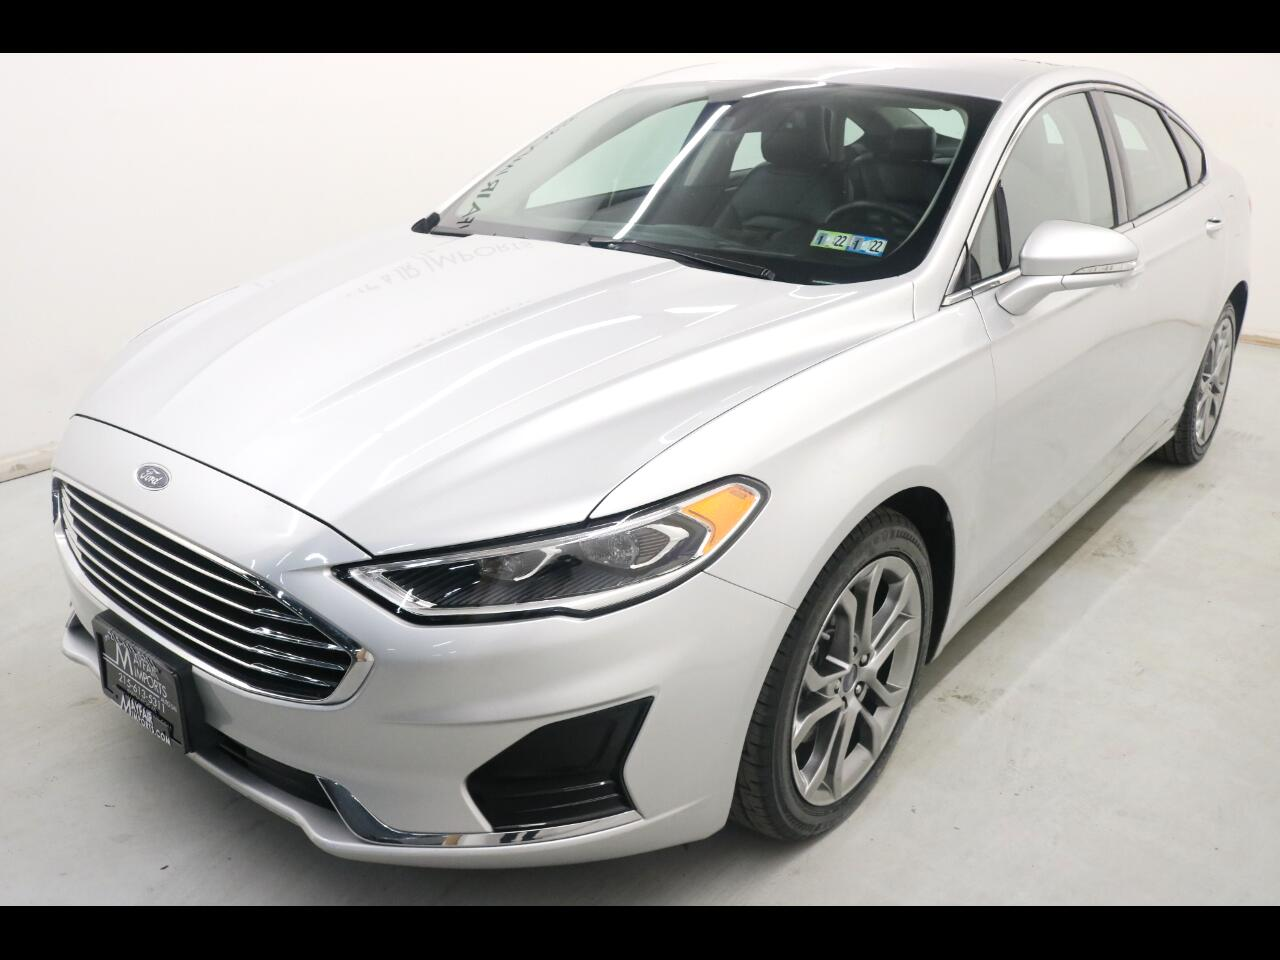 Ford Fusion 4dr Sdn I4 SEL 2019